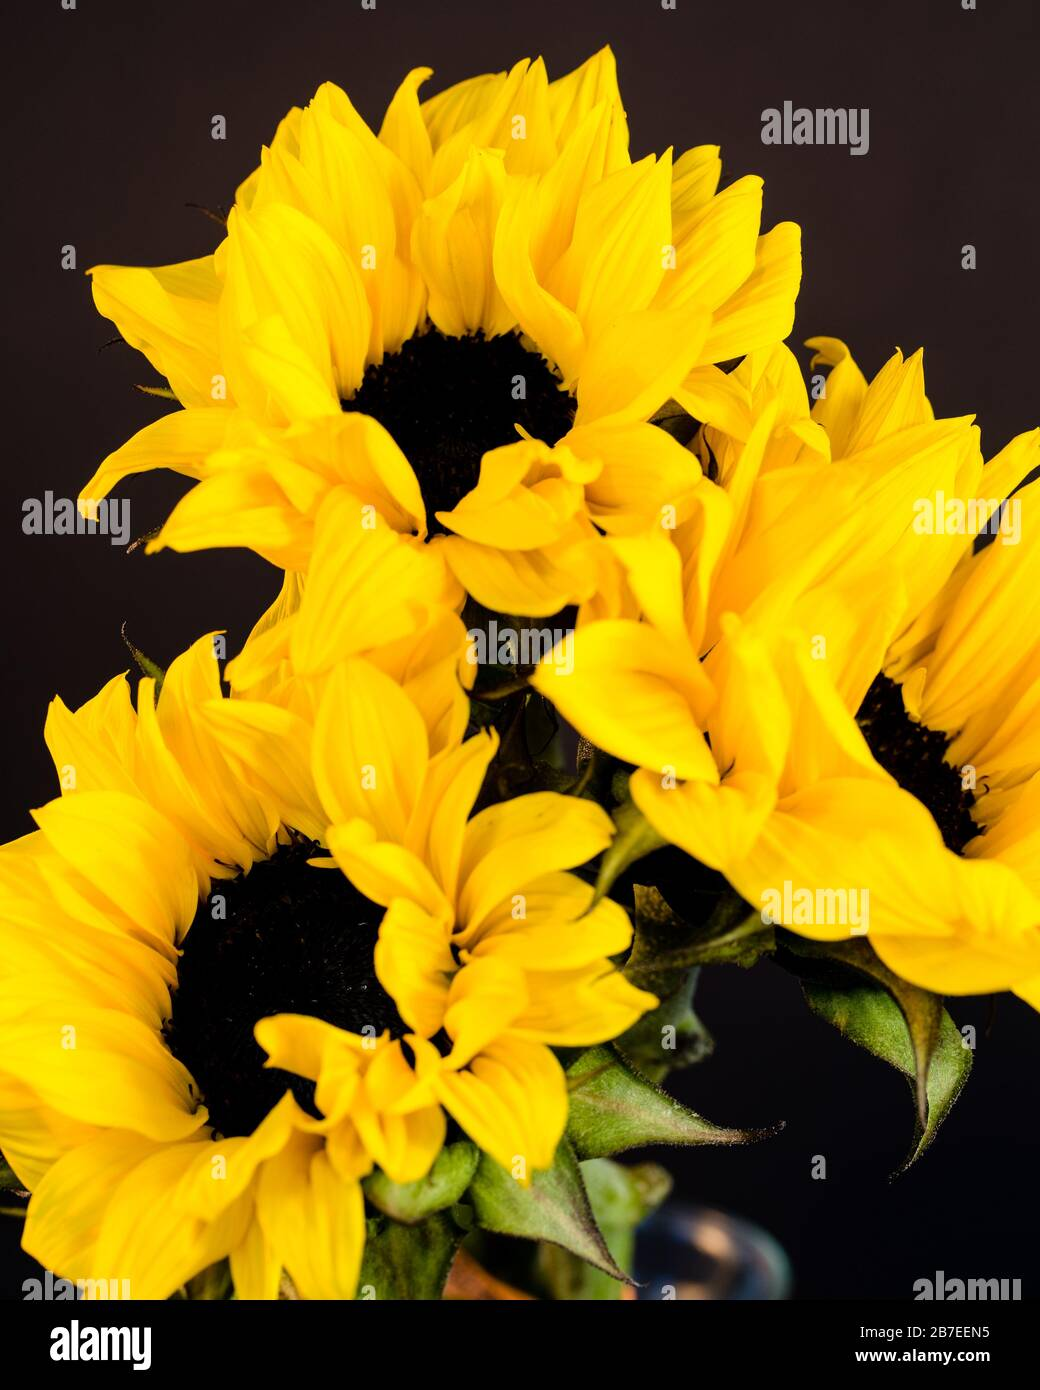 Sunflower Bouquet High Resolution Stock Photography And Images Alamy